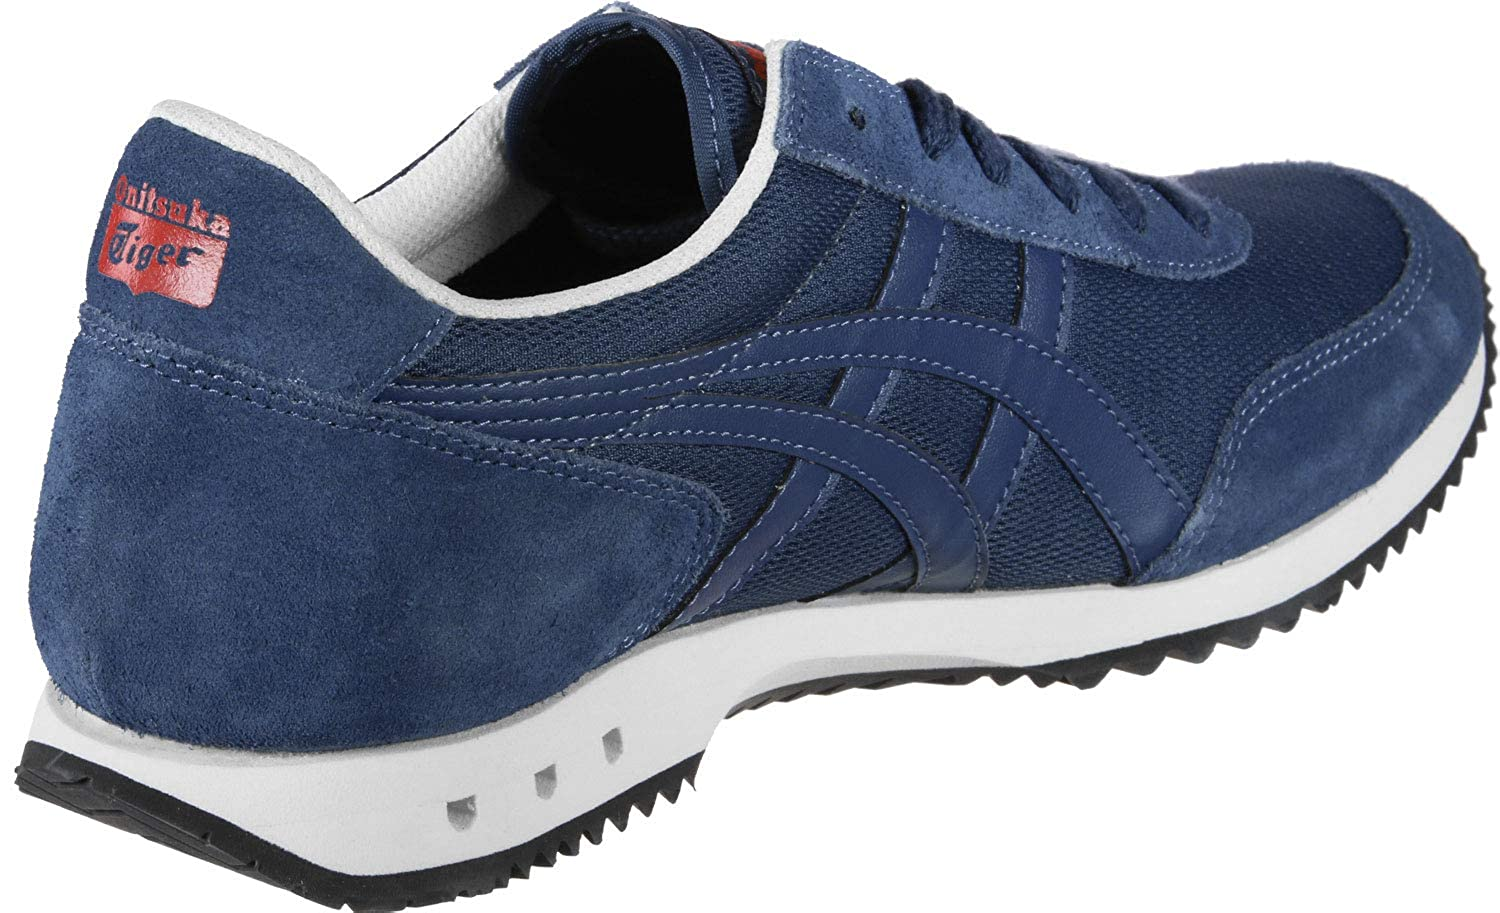 Onitsuka Tiger Tiger Tiger New York Midnight Blau Midnight Blau  32ea2f